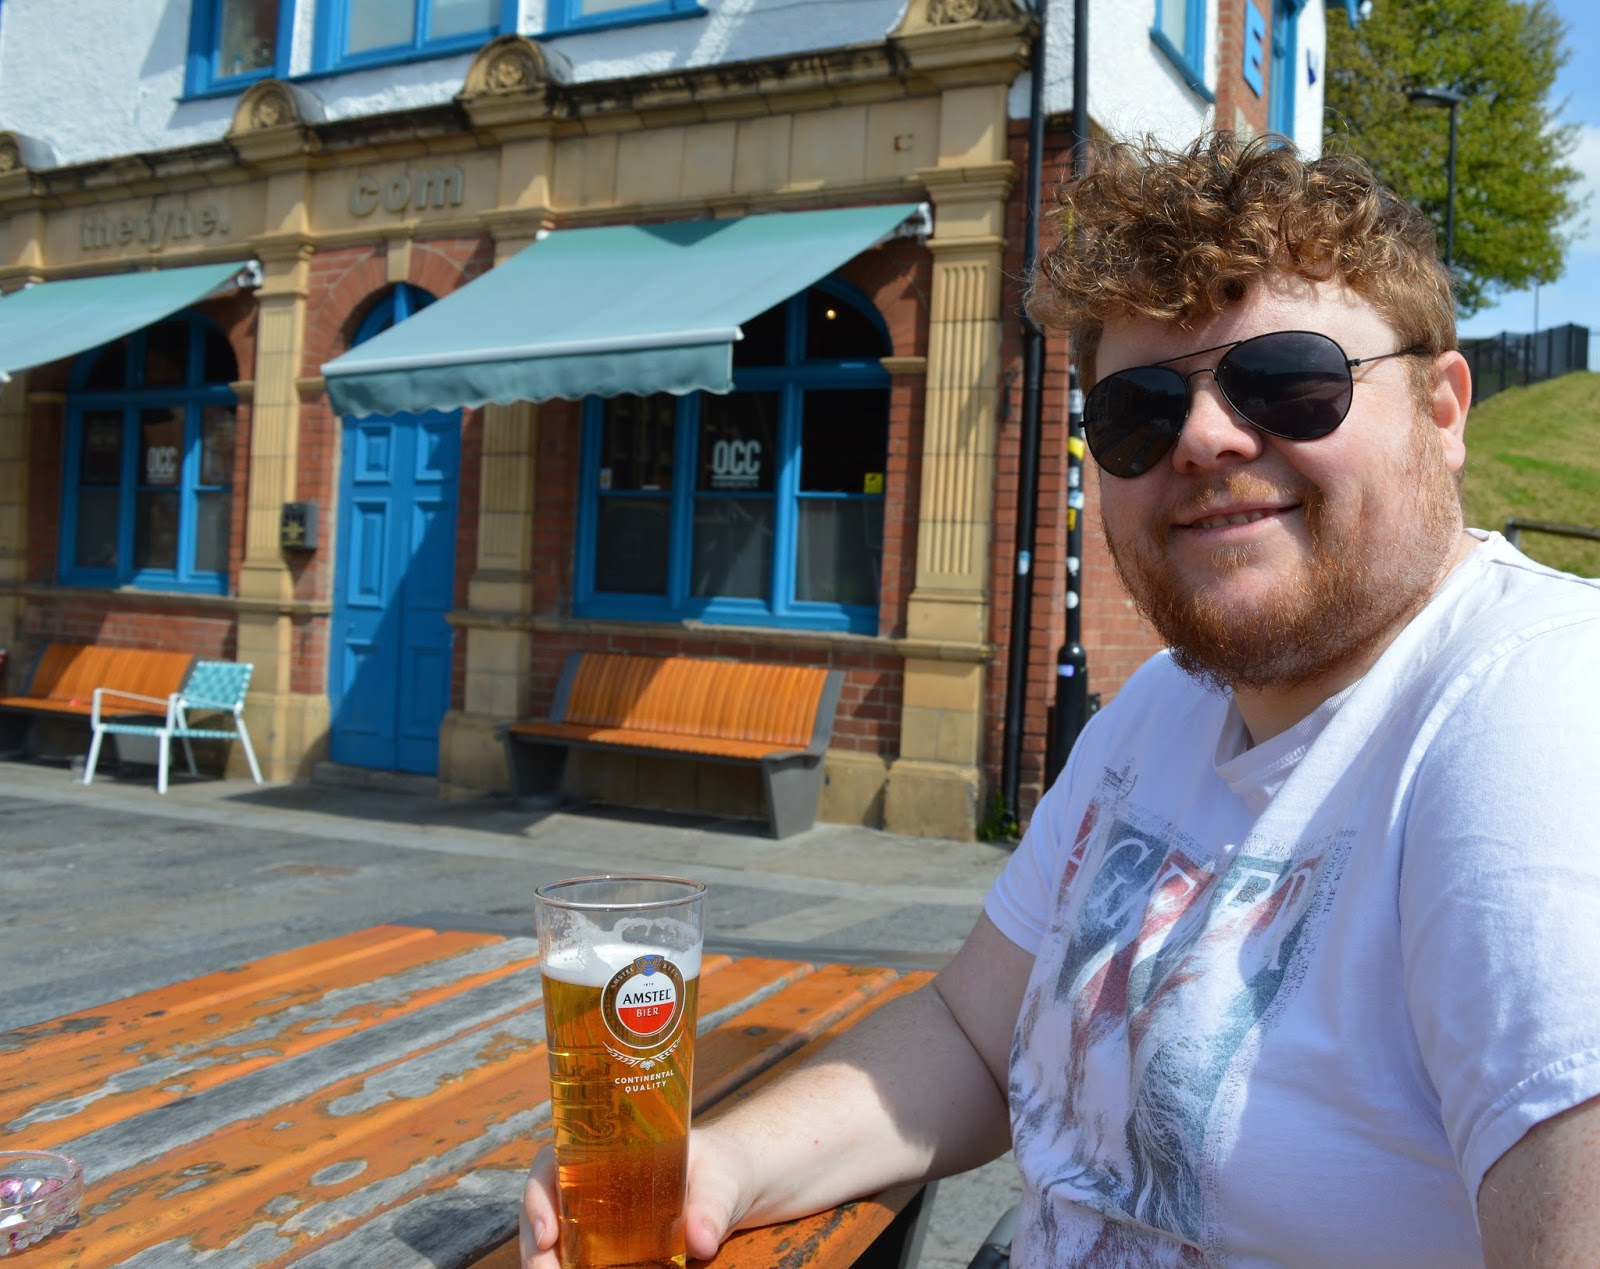 Beer Garden & Foodie Heaven in Ouseburn, Newcastle - The Tyne Bar